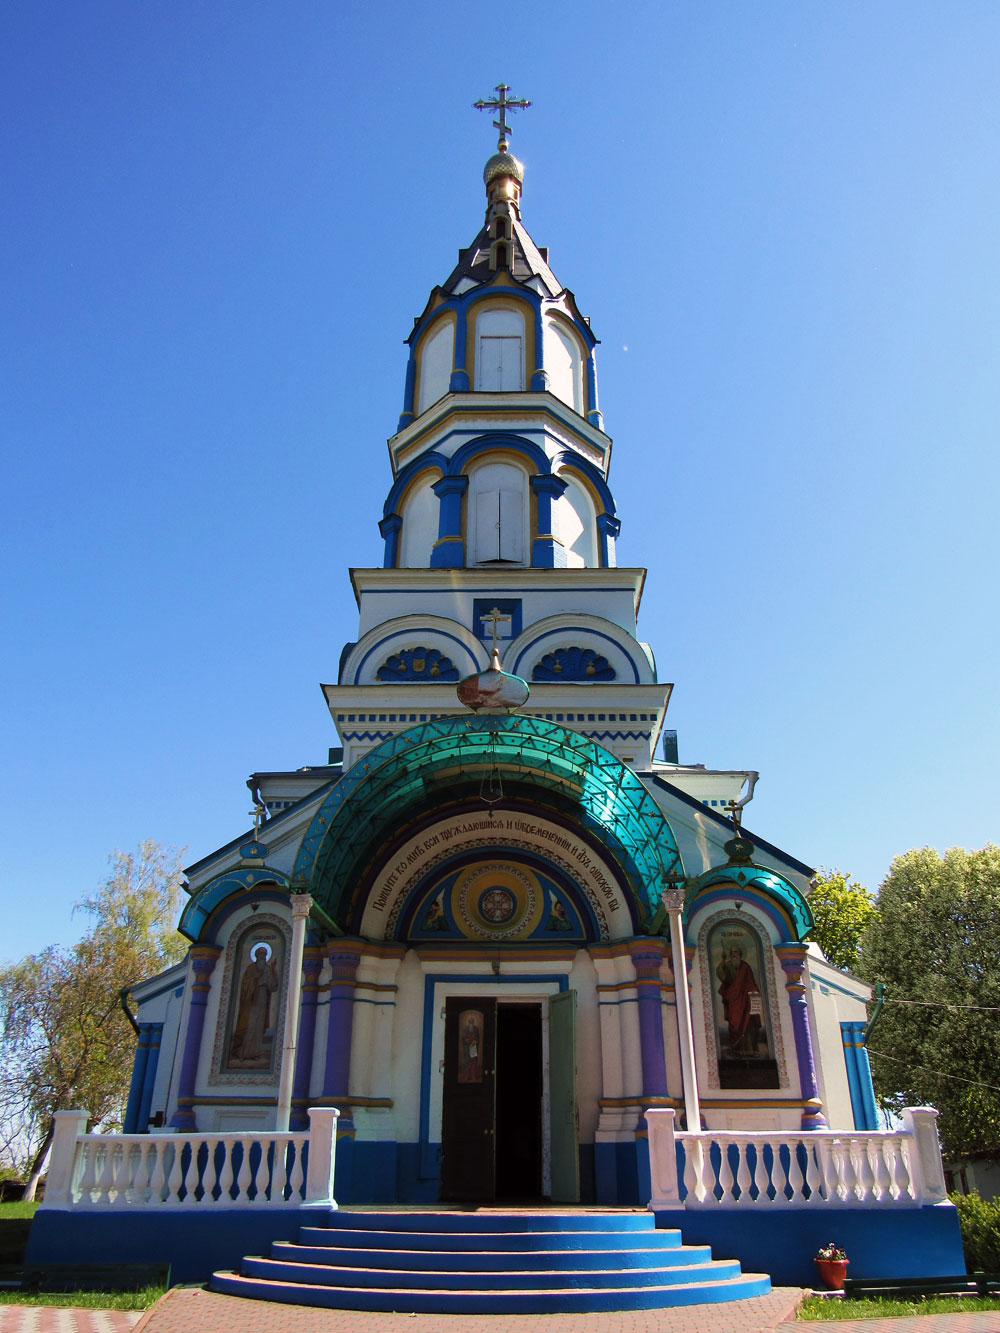 St. Elijah Church - Chernobyl City